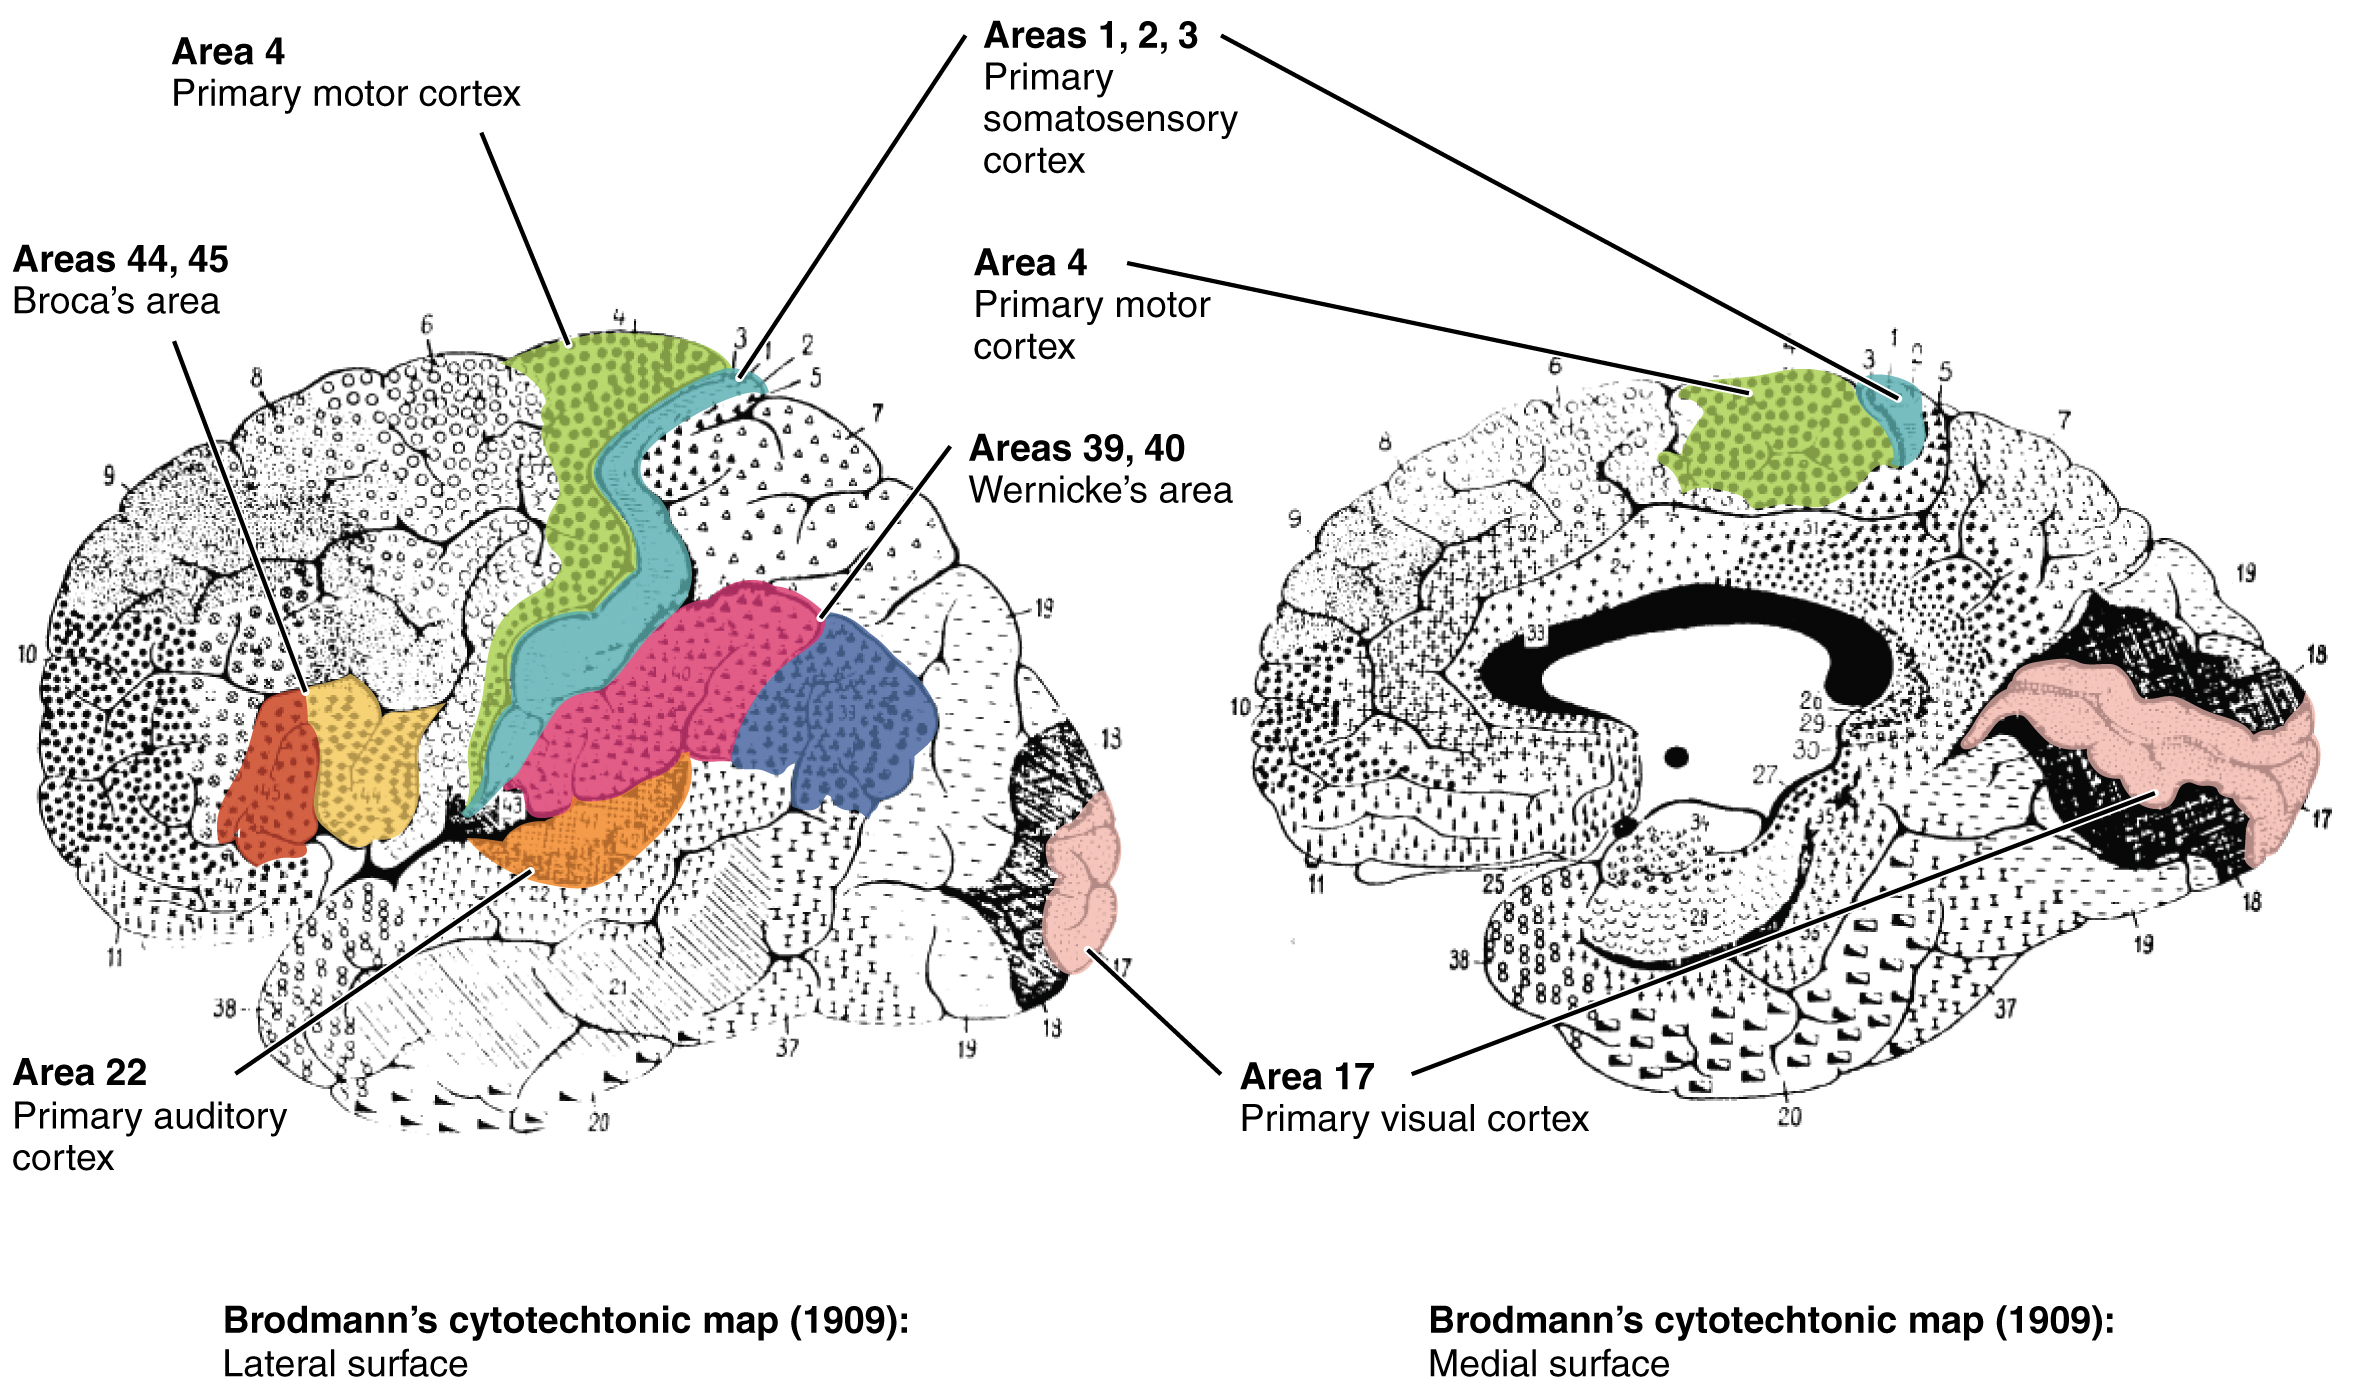 In this figure, the Brodmann areas, identifying the functional regions of the brain, are mapped. The left panel shows the lateral surface of the brain and the right panel shows the medial surface.